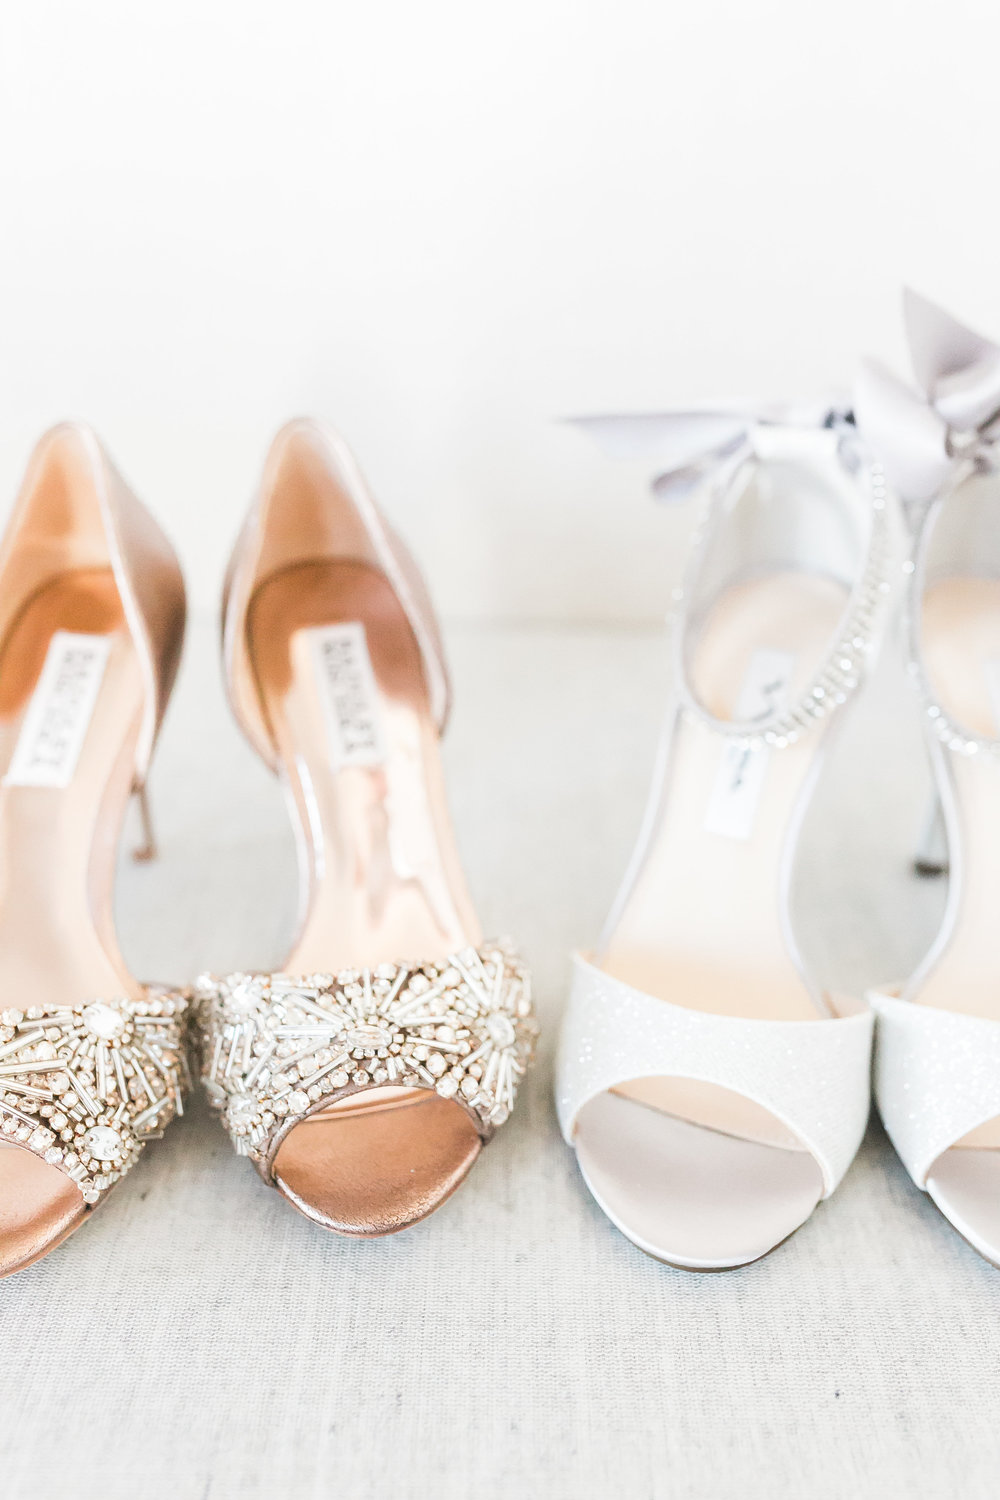 The bride wore two pairs of shoes, one for each outfit.    Las Vegas Wedding Planner Andrea Eppolito.  www.andreaeppolitoevents.com  Photo by J.Anne Photography.  www.j-annephotography.com  As seen on The  Wedding Editorialist  Wedding Blog.